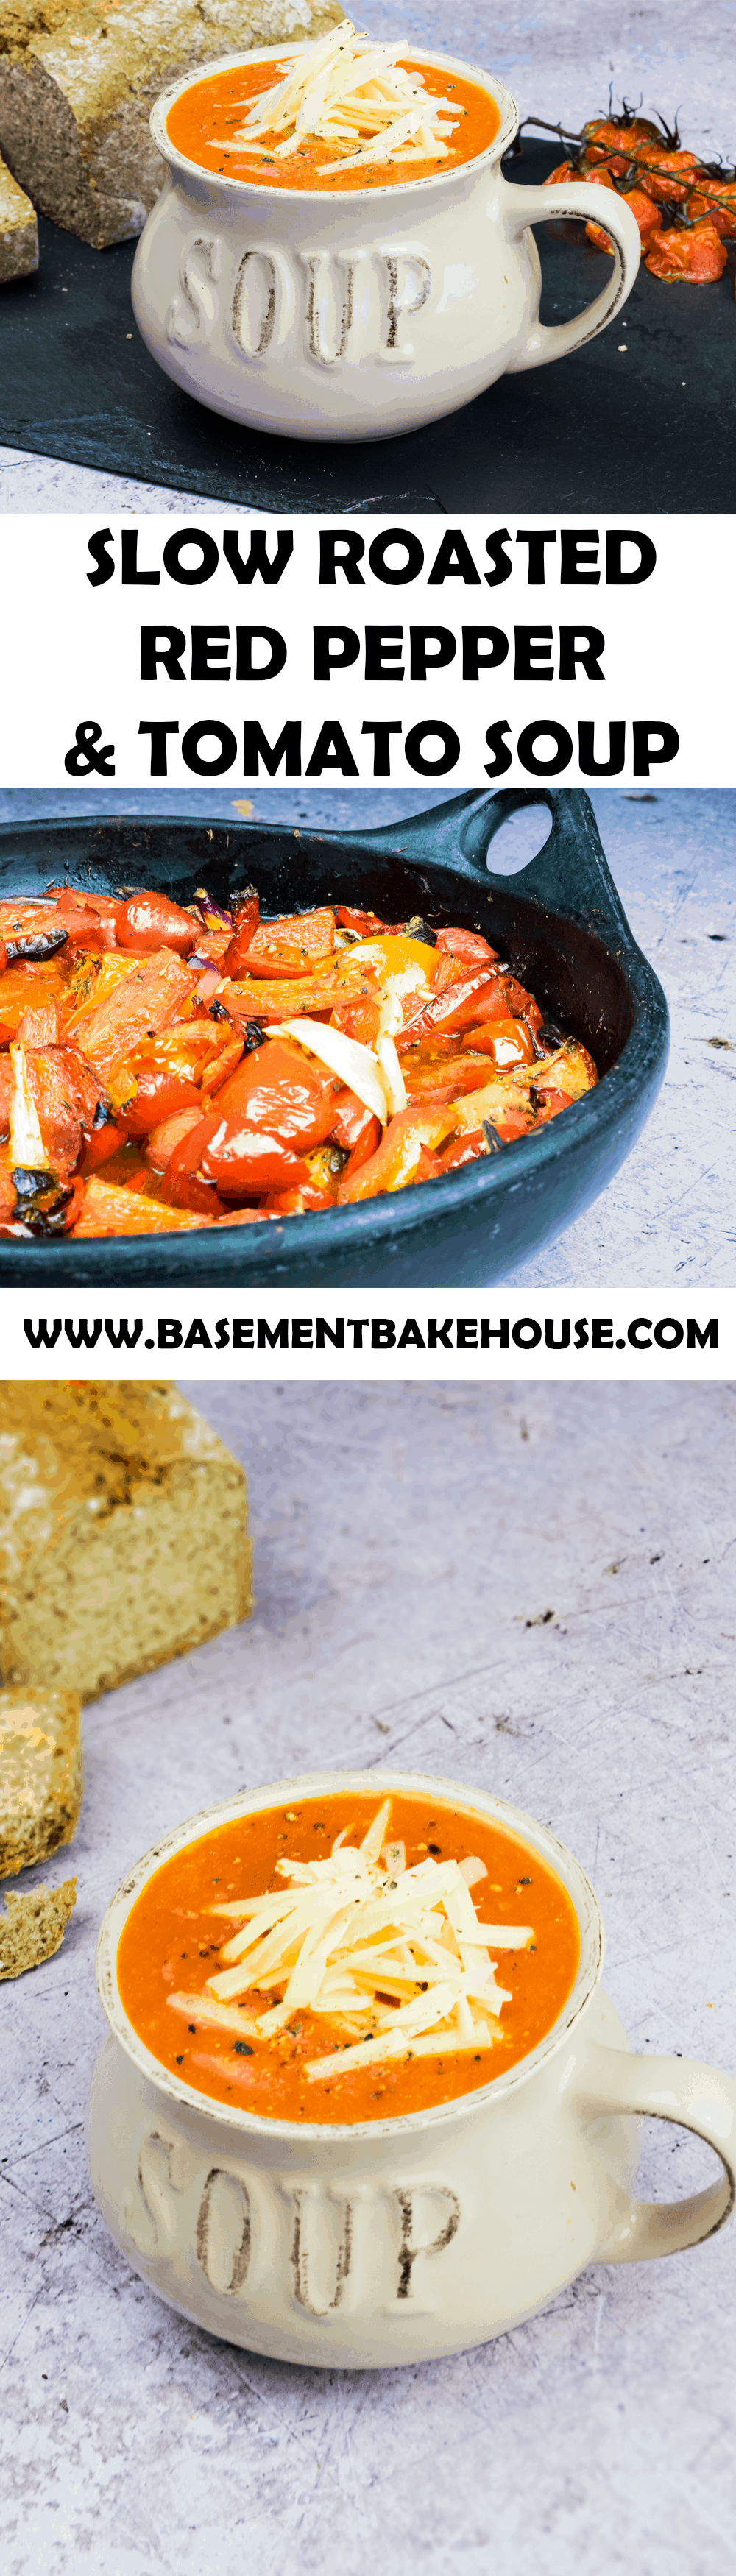 Slow Roasted Red Pepper and Tomato Soup - Basement Bakehouse